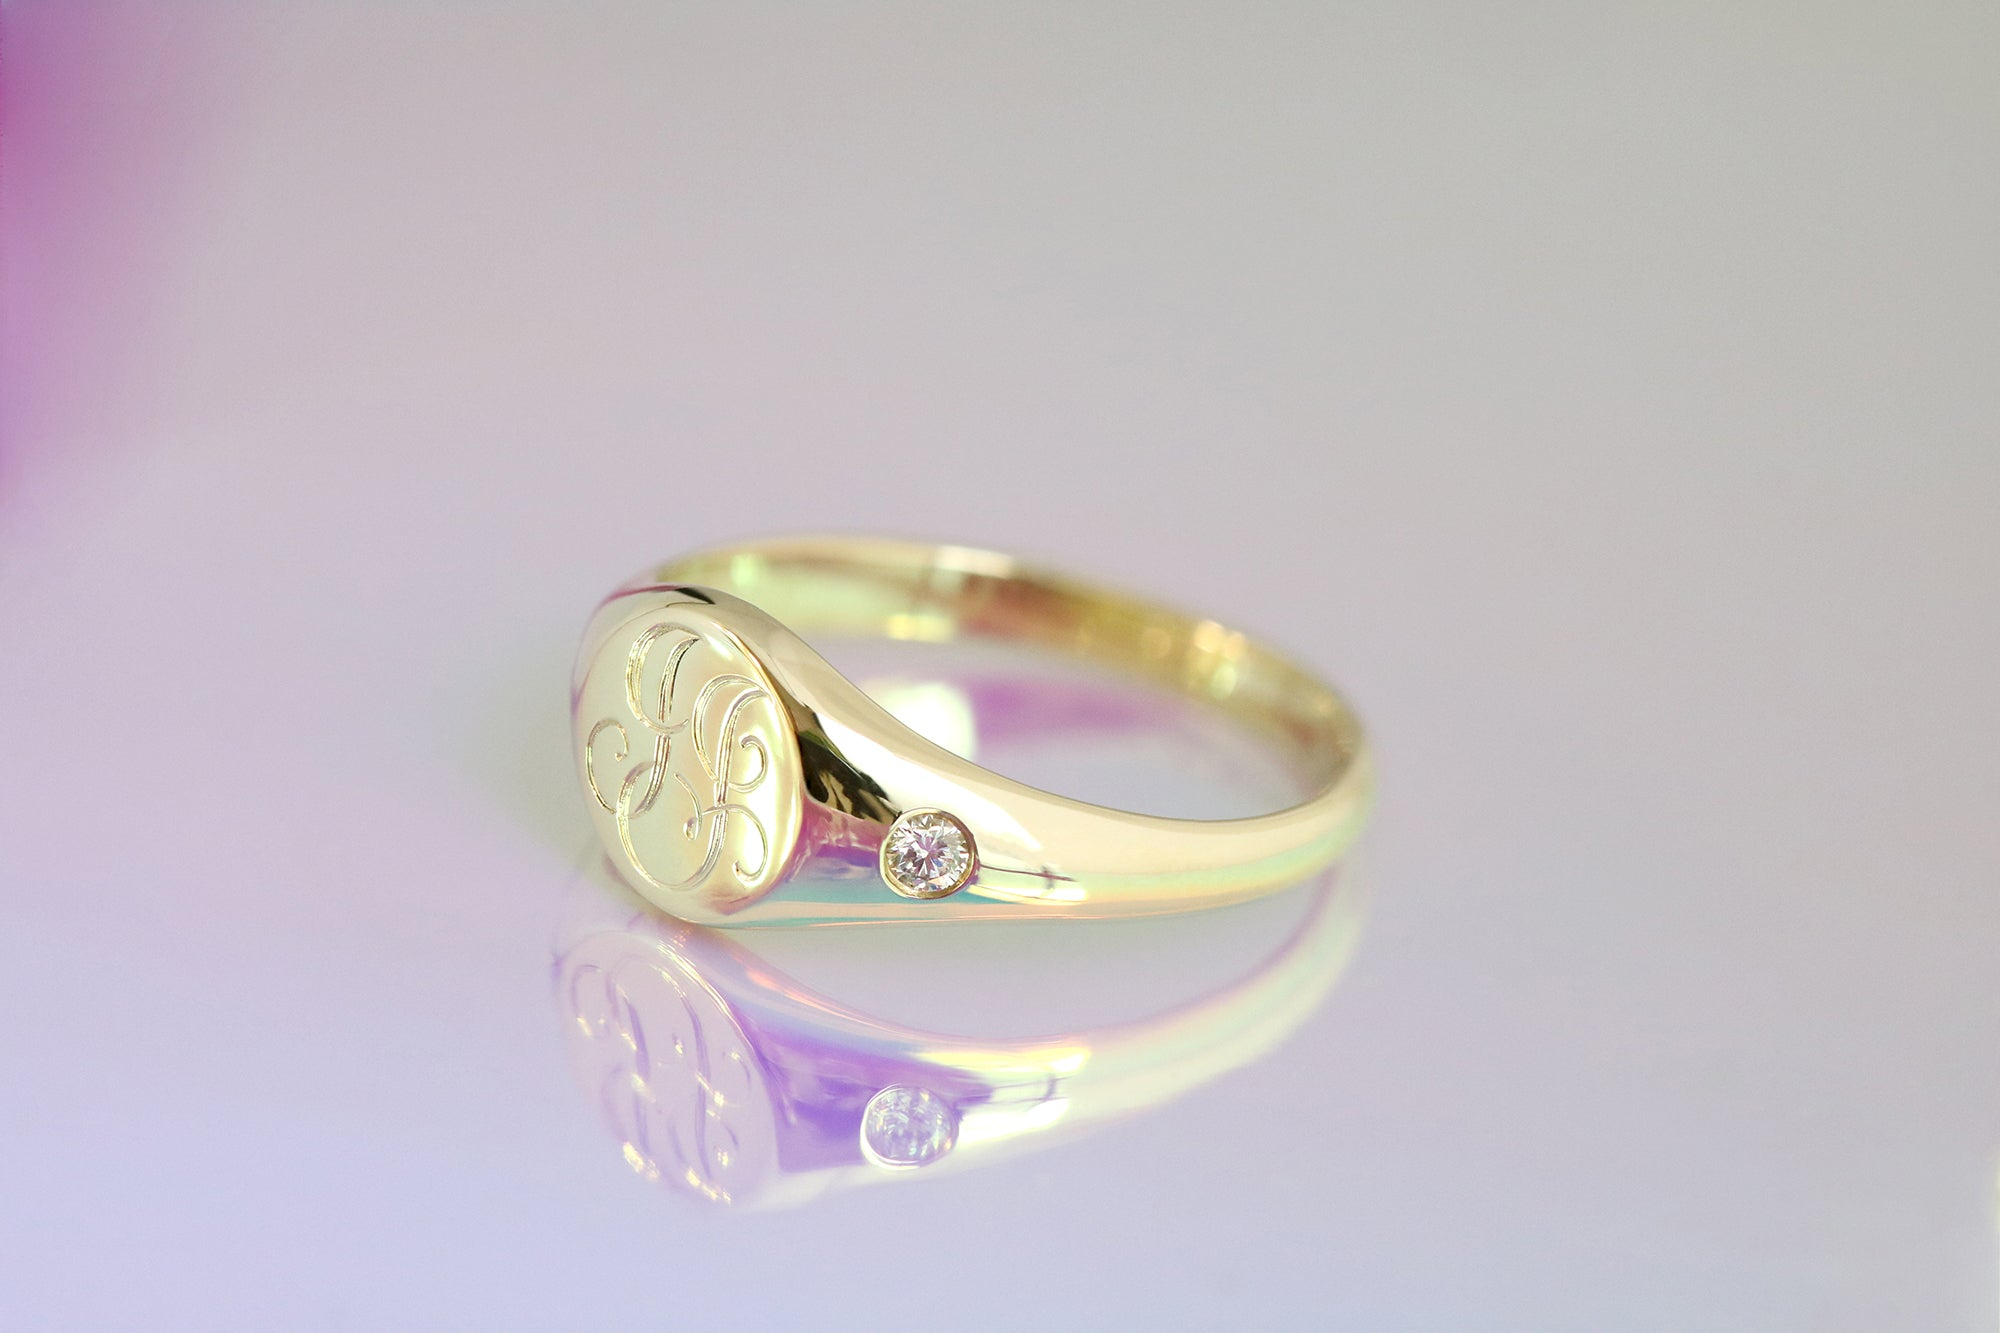 engraved signet ring with diamonds